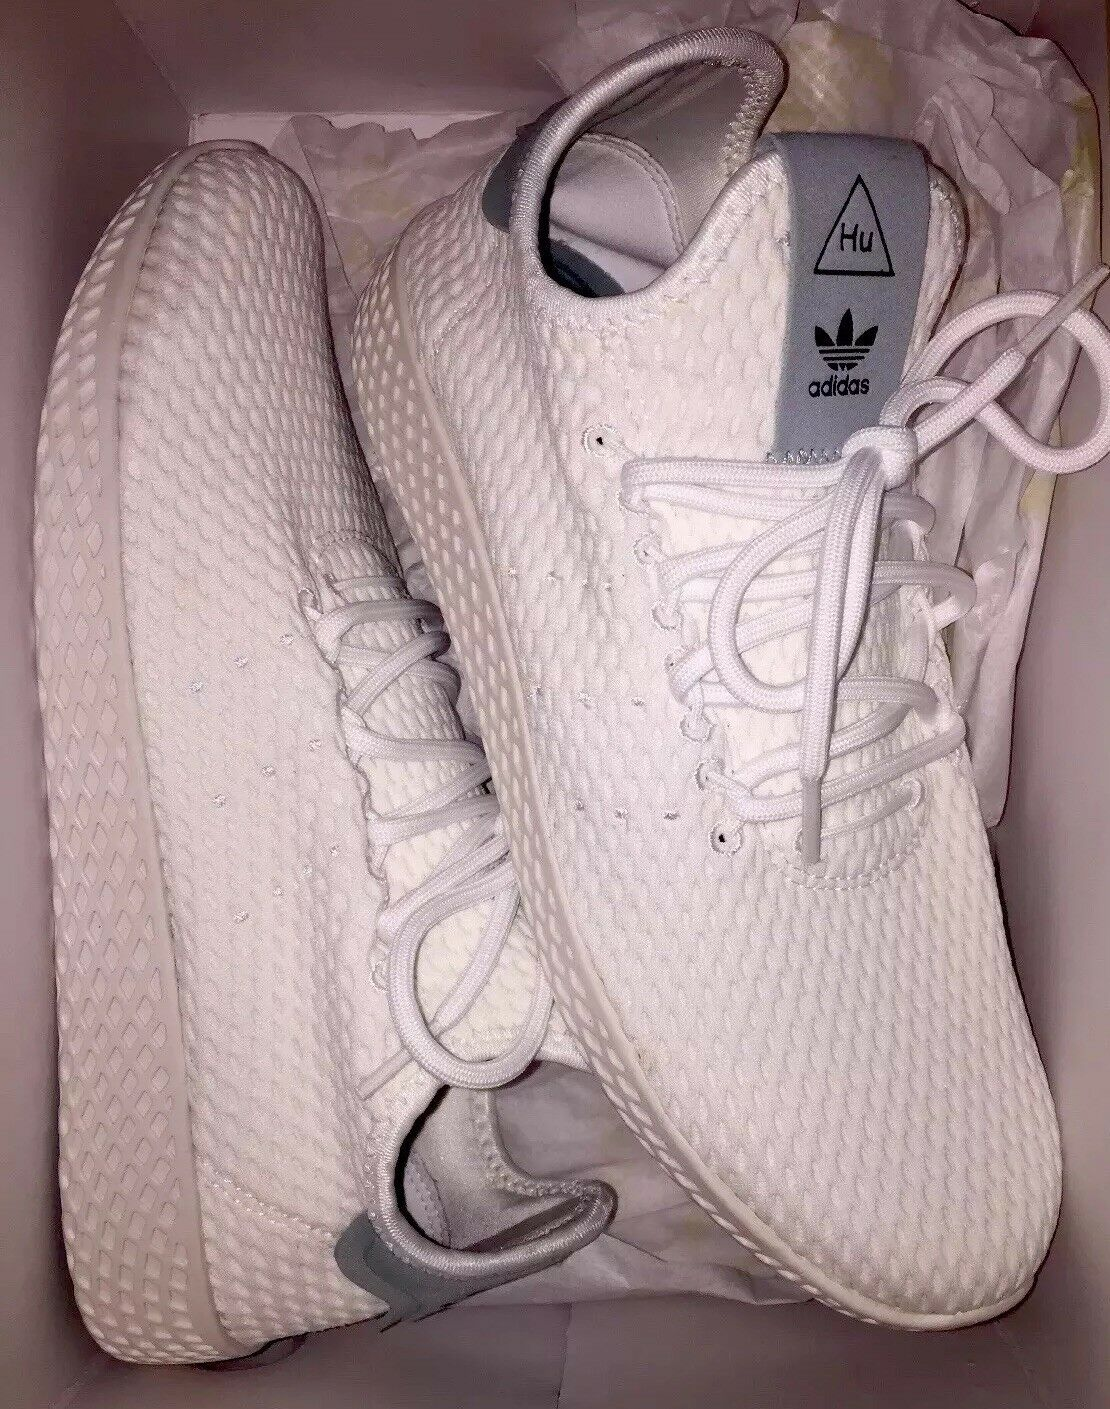 Pharell Williams Adidas White Women's Size 8.5